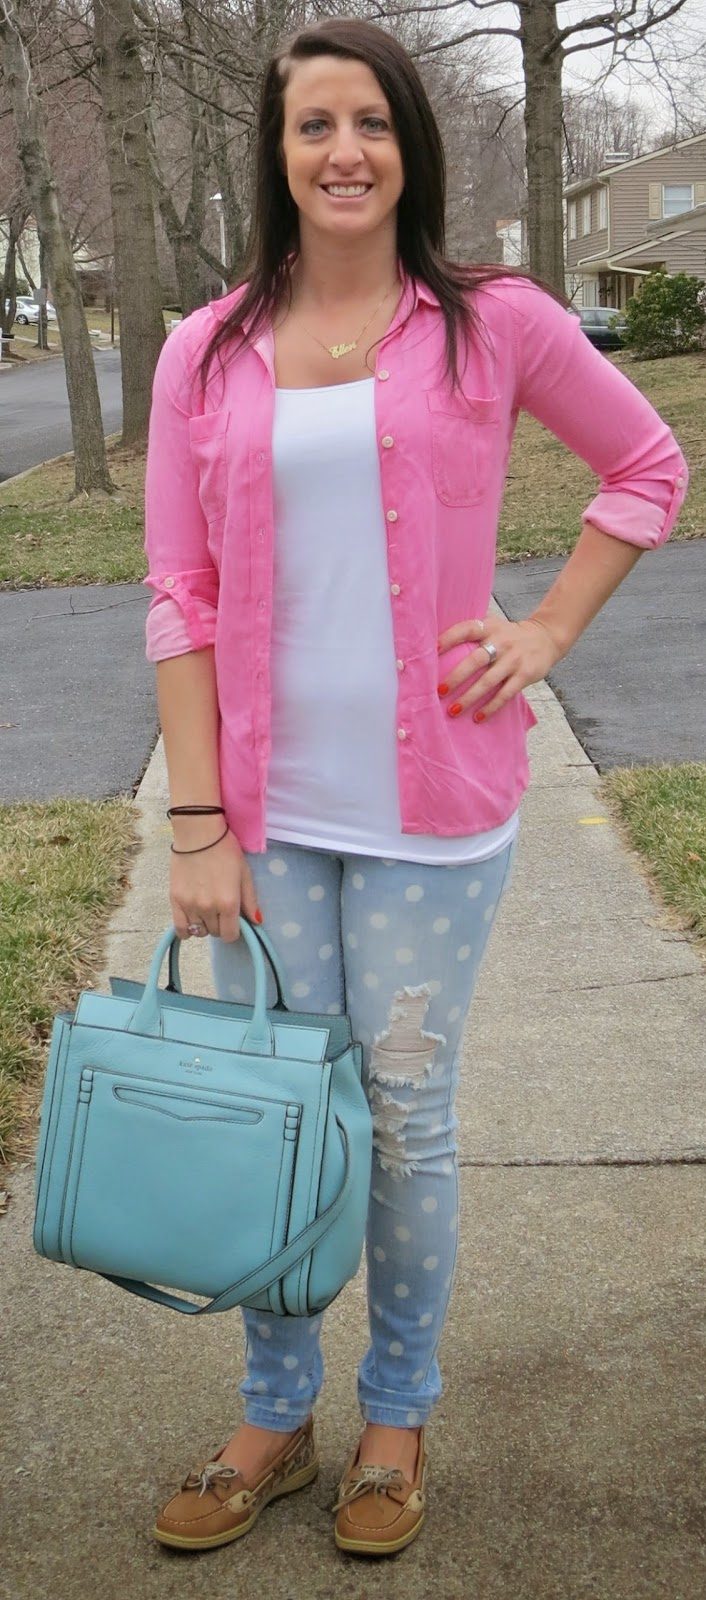 kate spade claremont bag, pink blouse, fashion, outfit, leopard sperrys, polka dot jeans